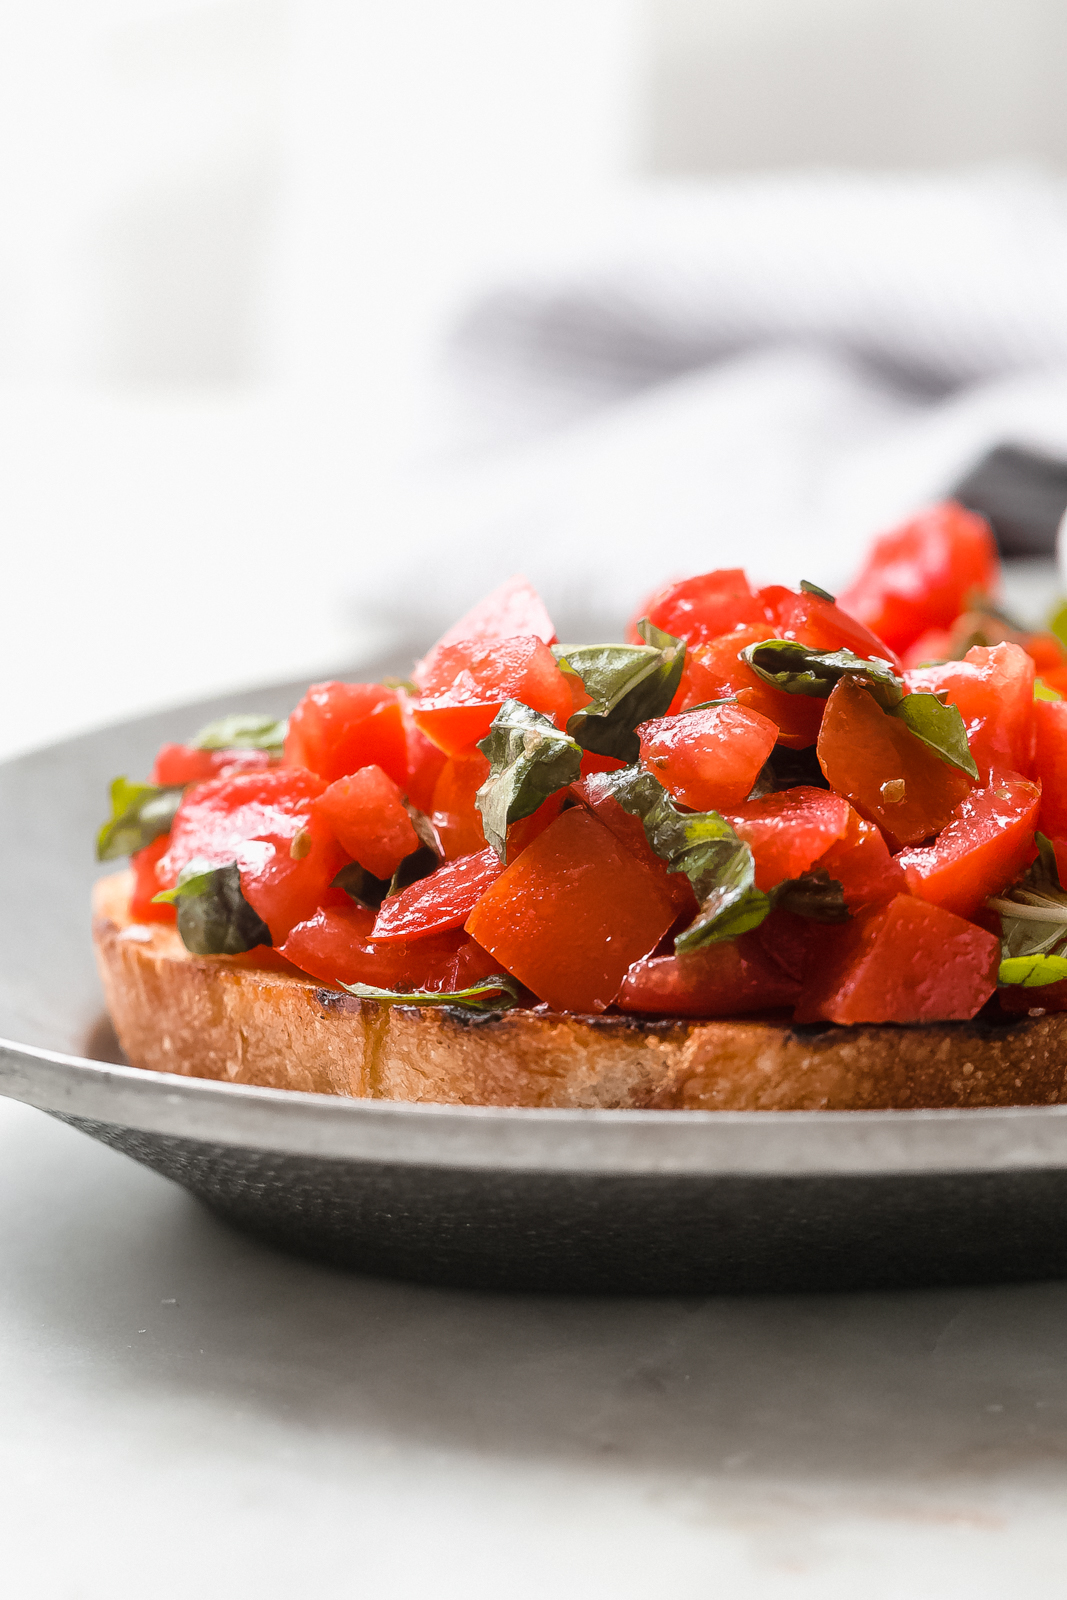 close up of toasted bread topped with tomato basil bruschetta mixture on metal plate